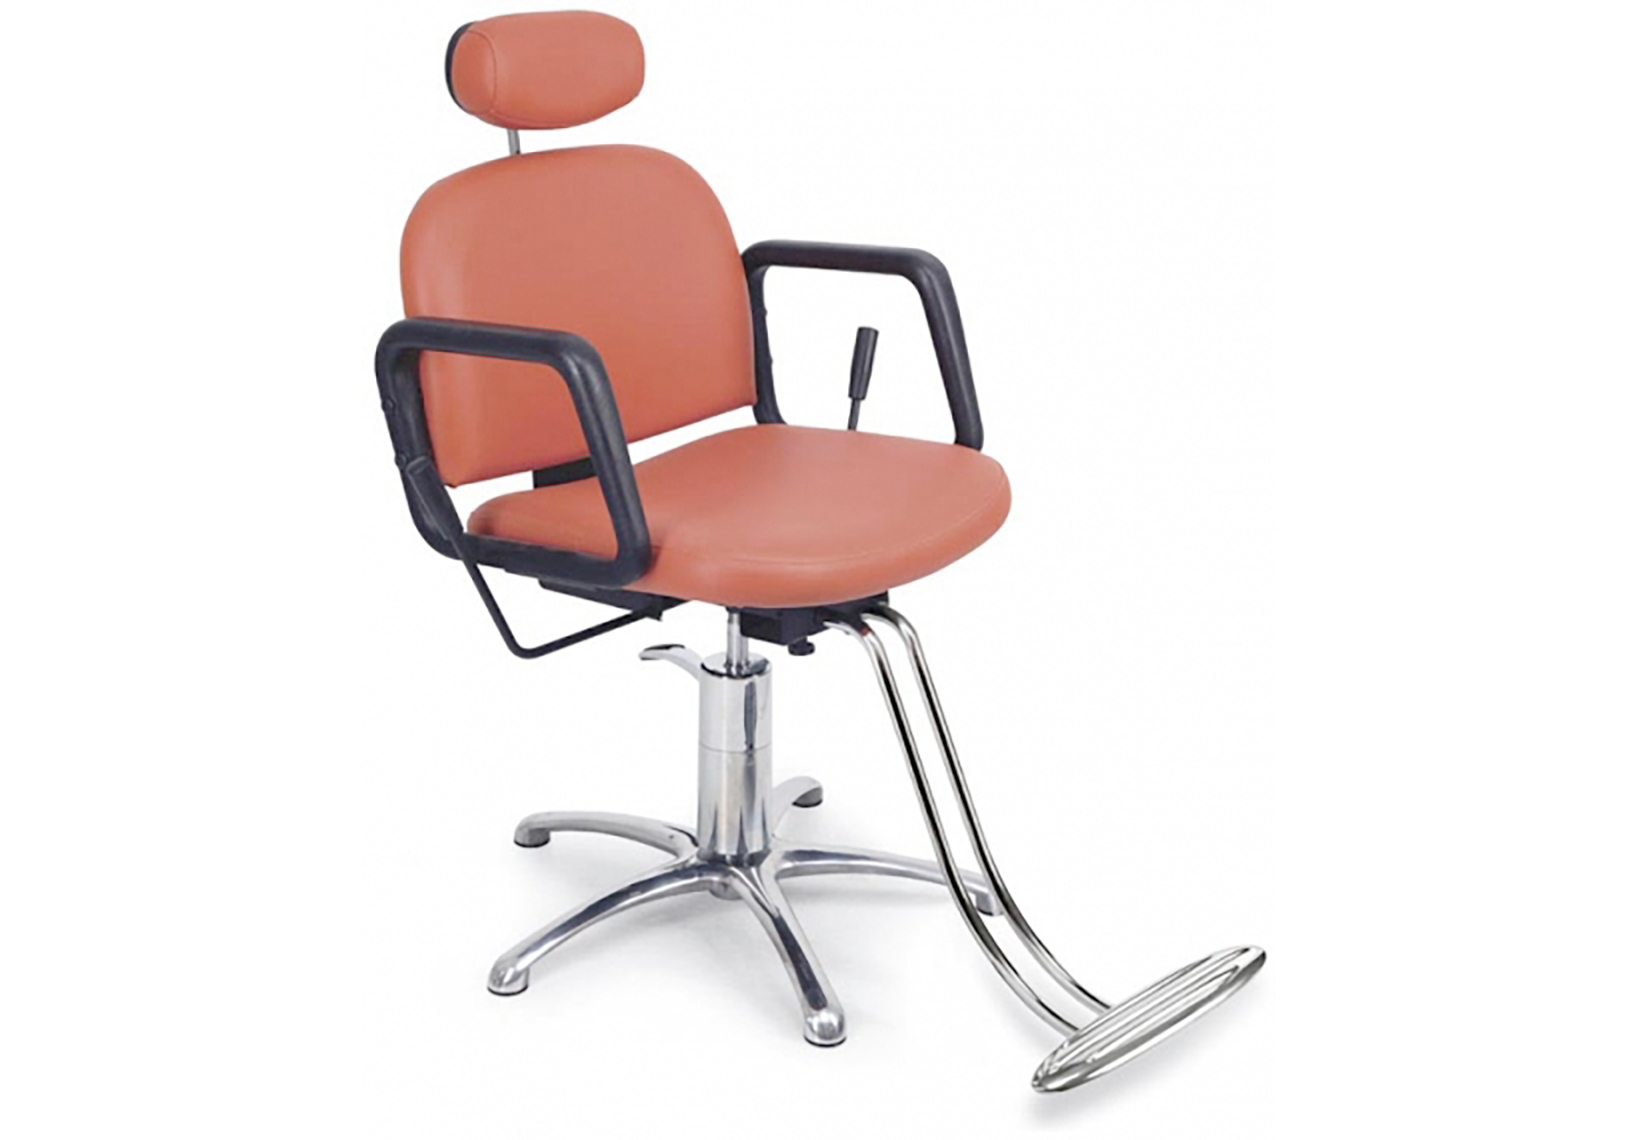 revolving chair for salon cross back chairs make up spa vision global leading equipment supplier